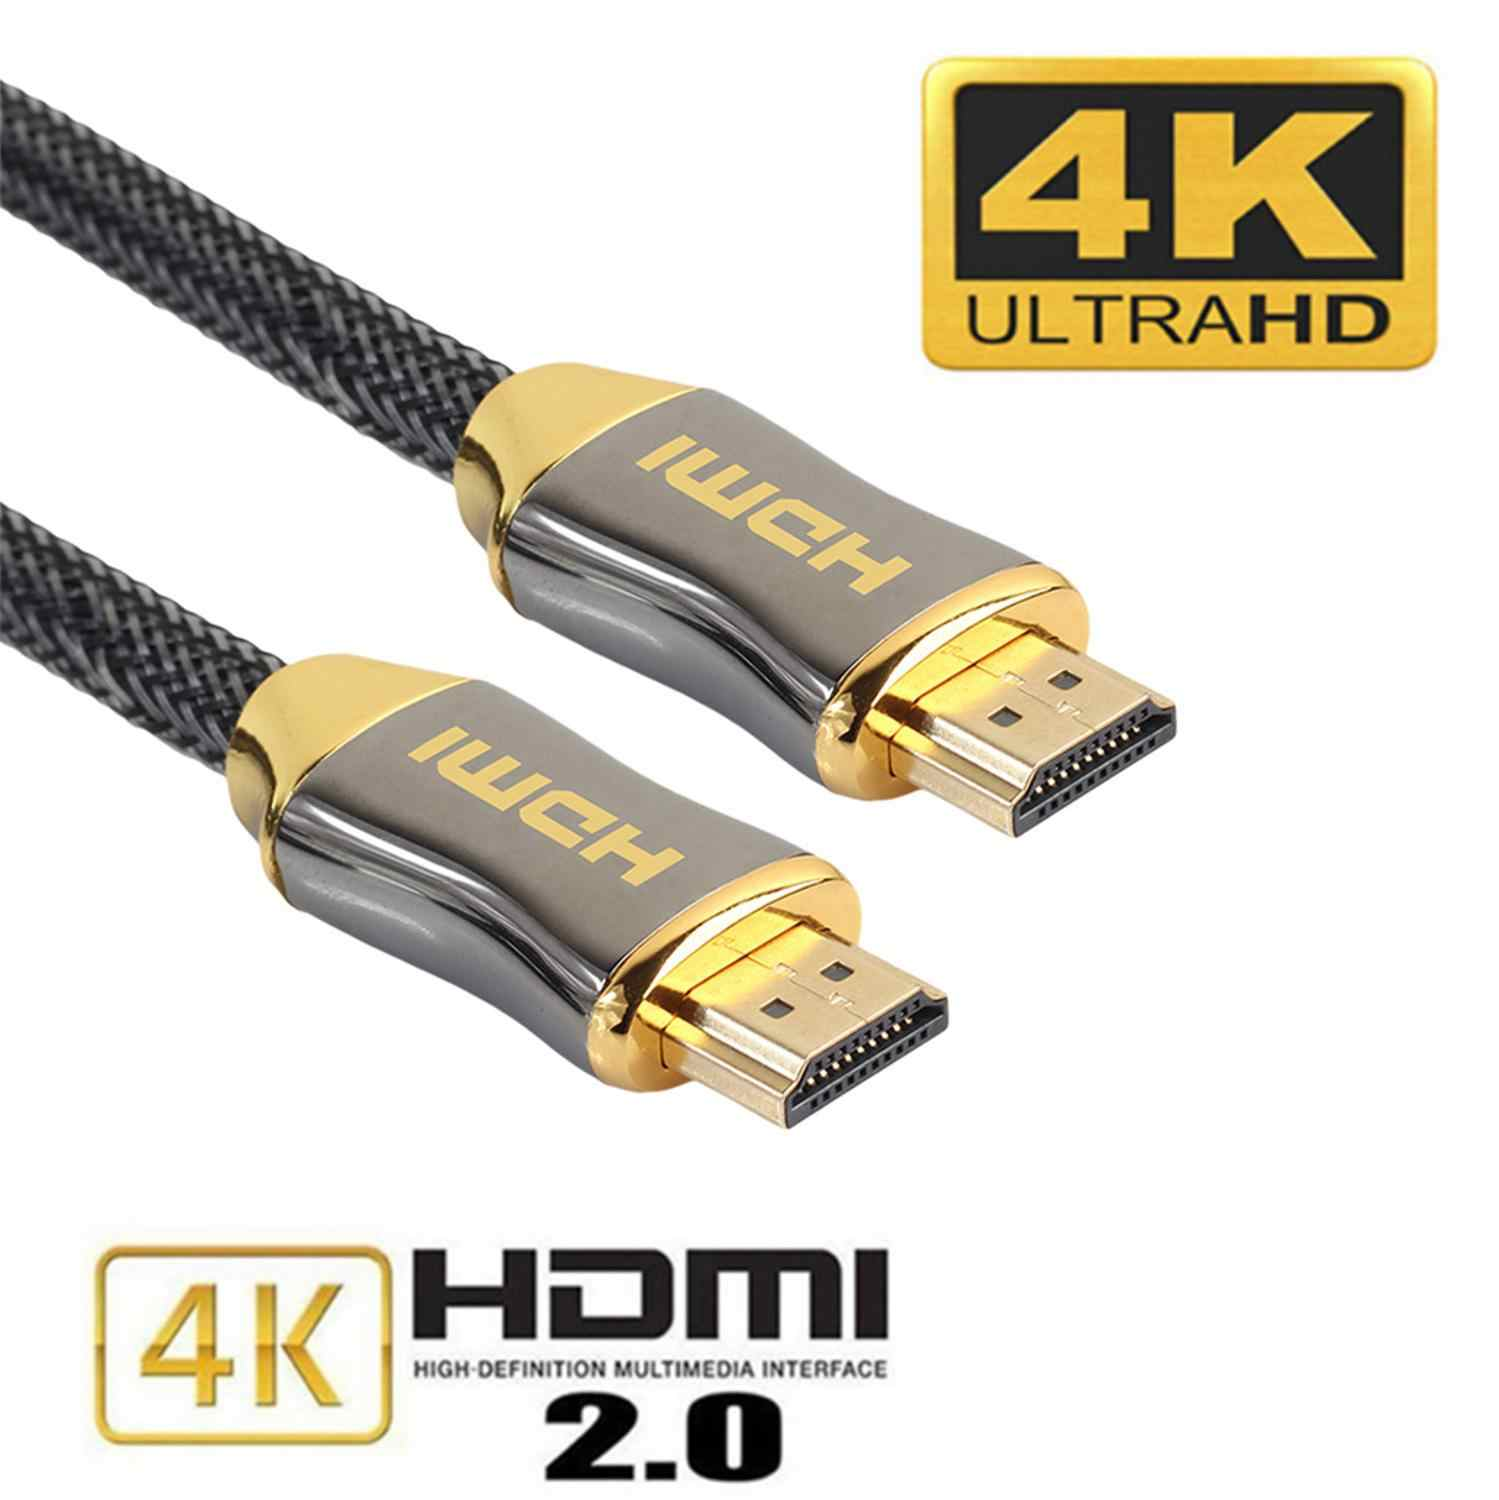 1M 2M 3M 5M 10M 15M 4K 60Hz Hdmi Naar Hdmi Kabel hoge Snelheid 2.0 Golden Plated Connection Cable Cord Voor Uhd Fhd 3D Xbox PS3 PS4 Tv